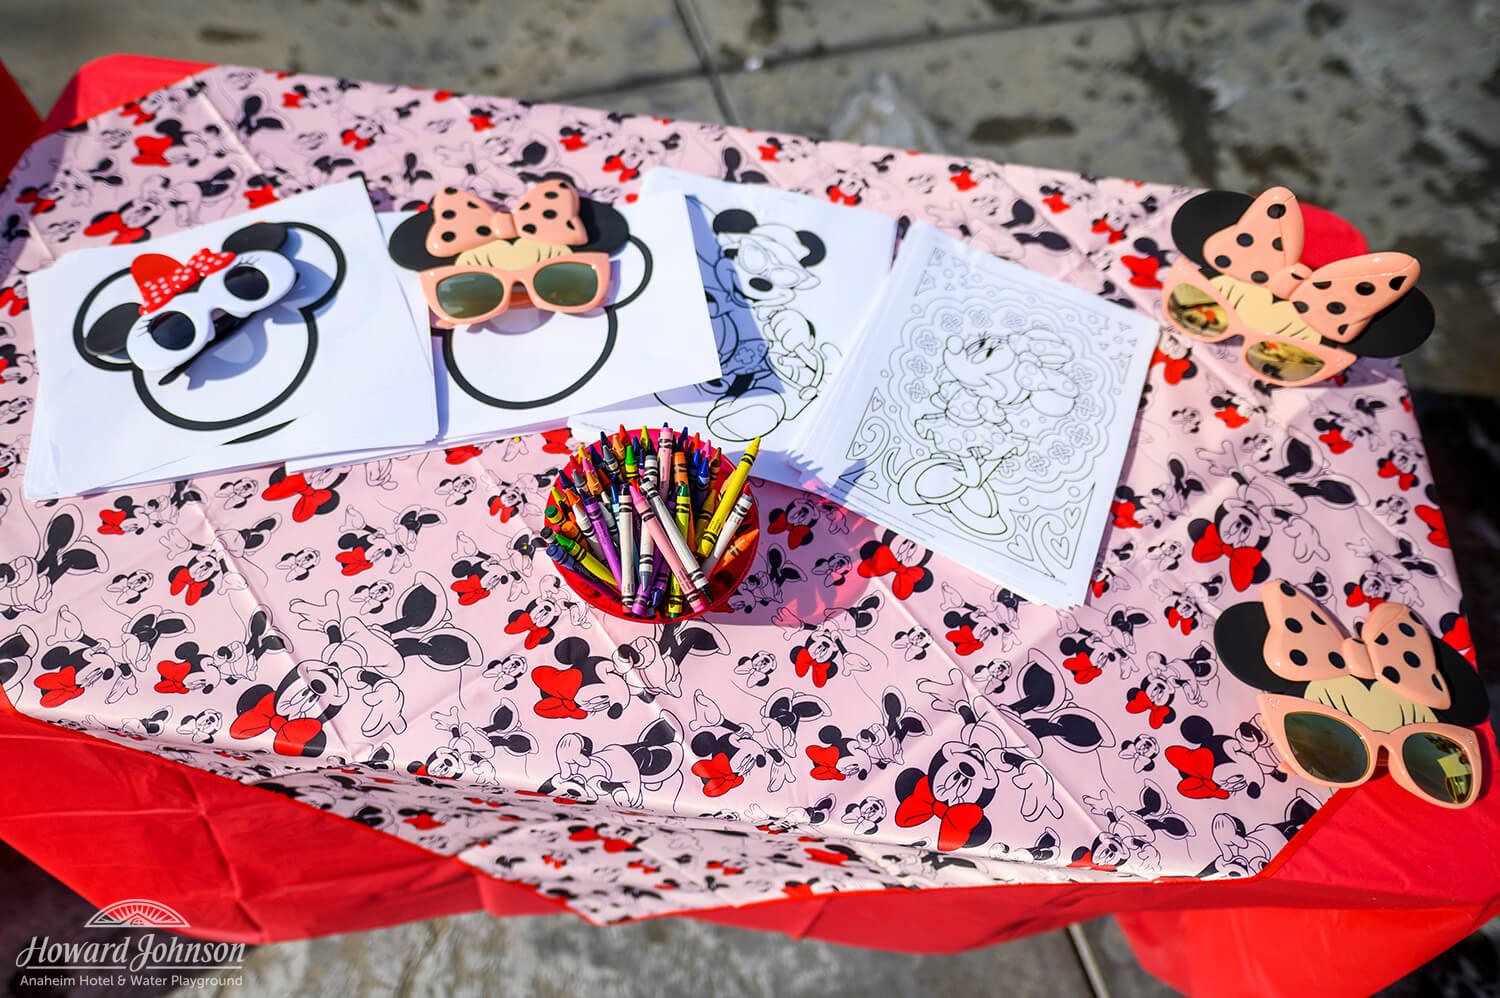 Minnie Mouse coloring pages, sunglasses, and crayons are pictured on a Minnie themed craft table